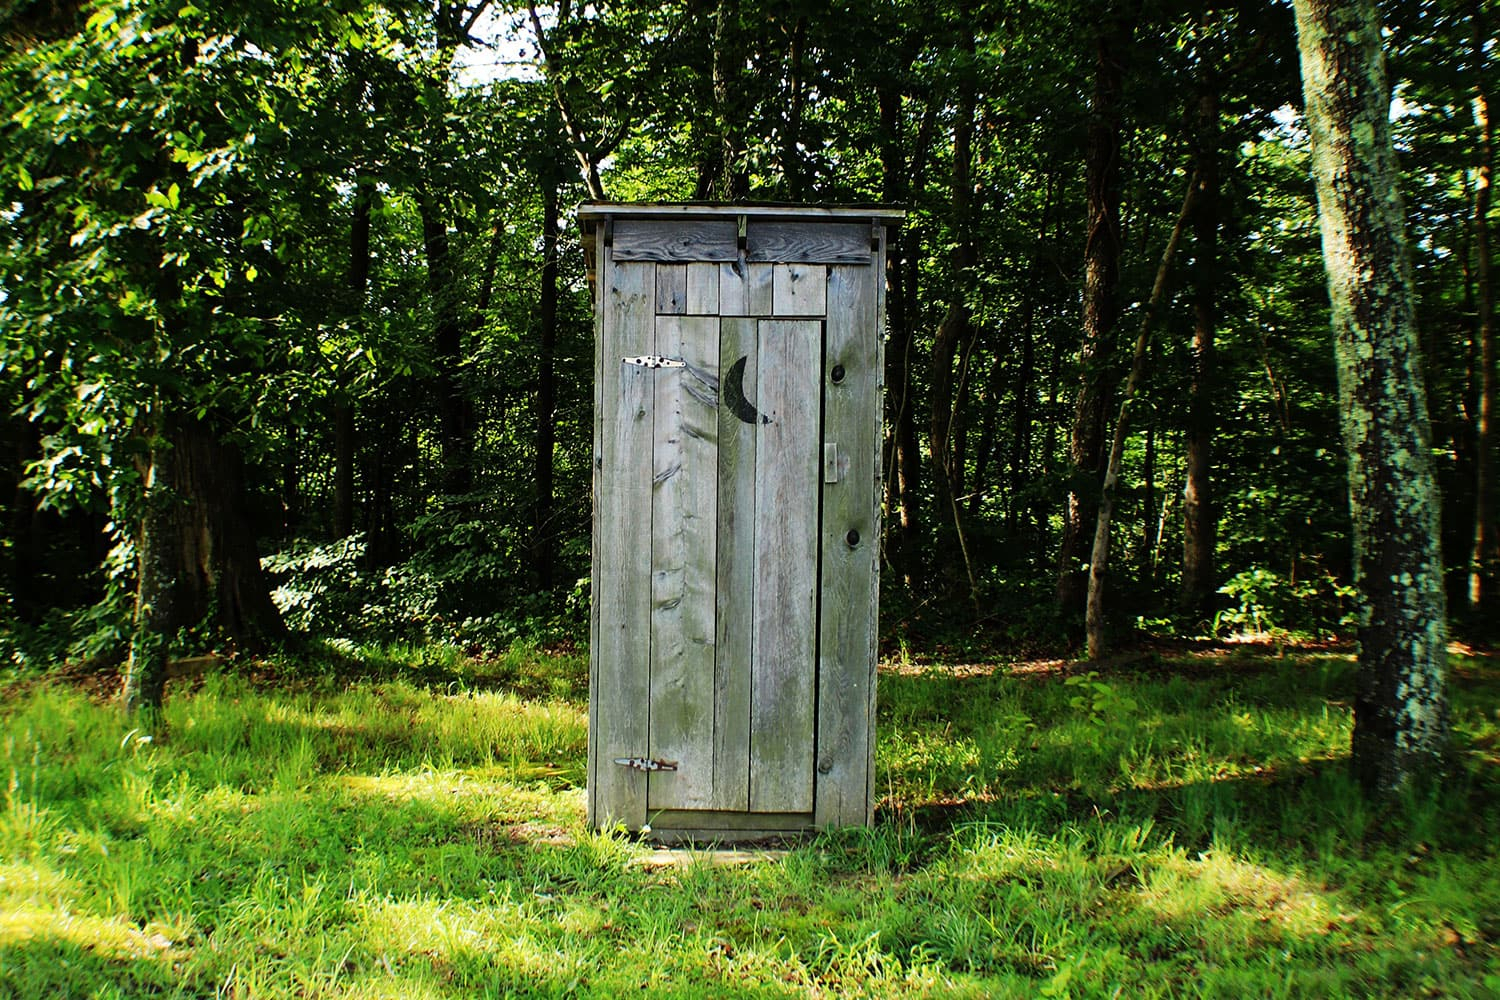 Types of Toilets Around the World - wooden outhouse